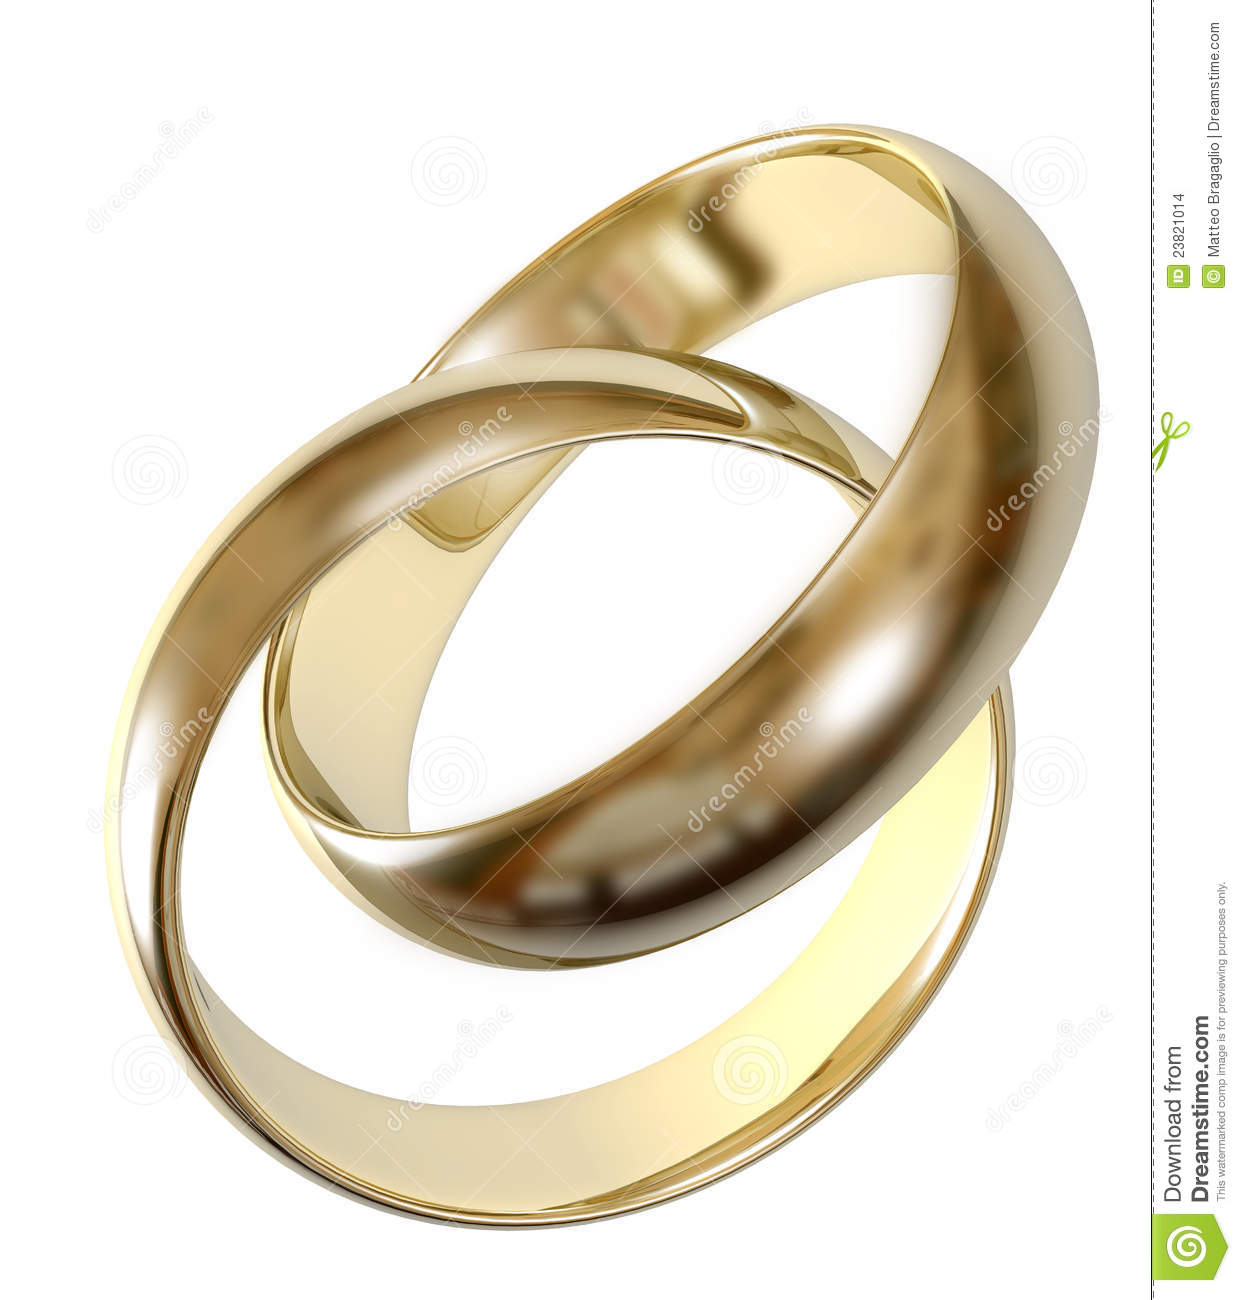 wedding rings stock images image 23821014